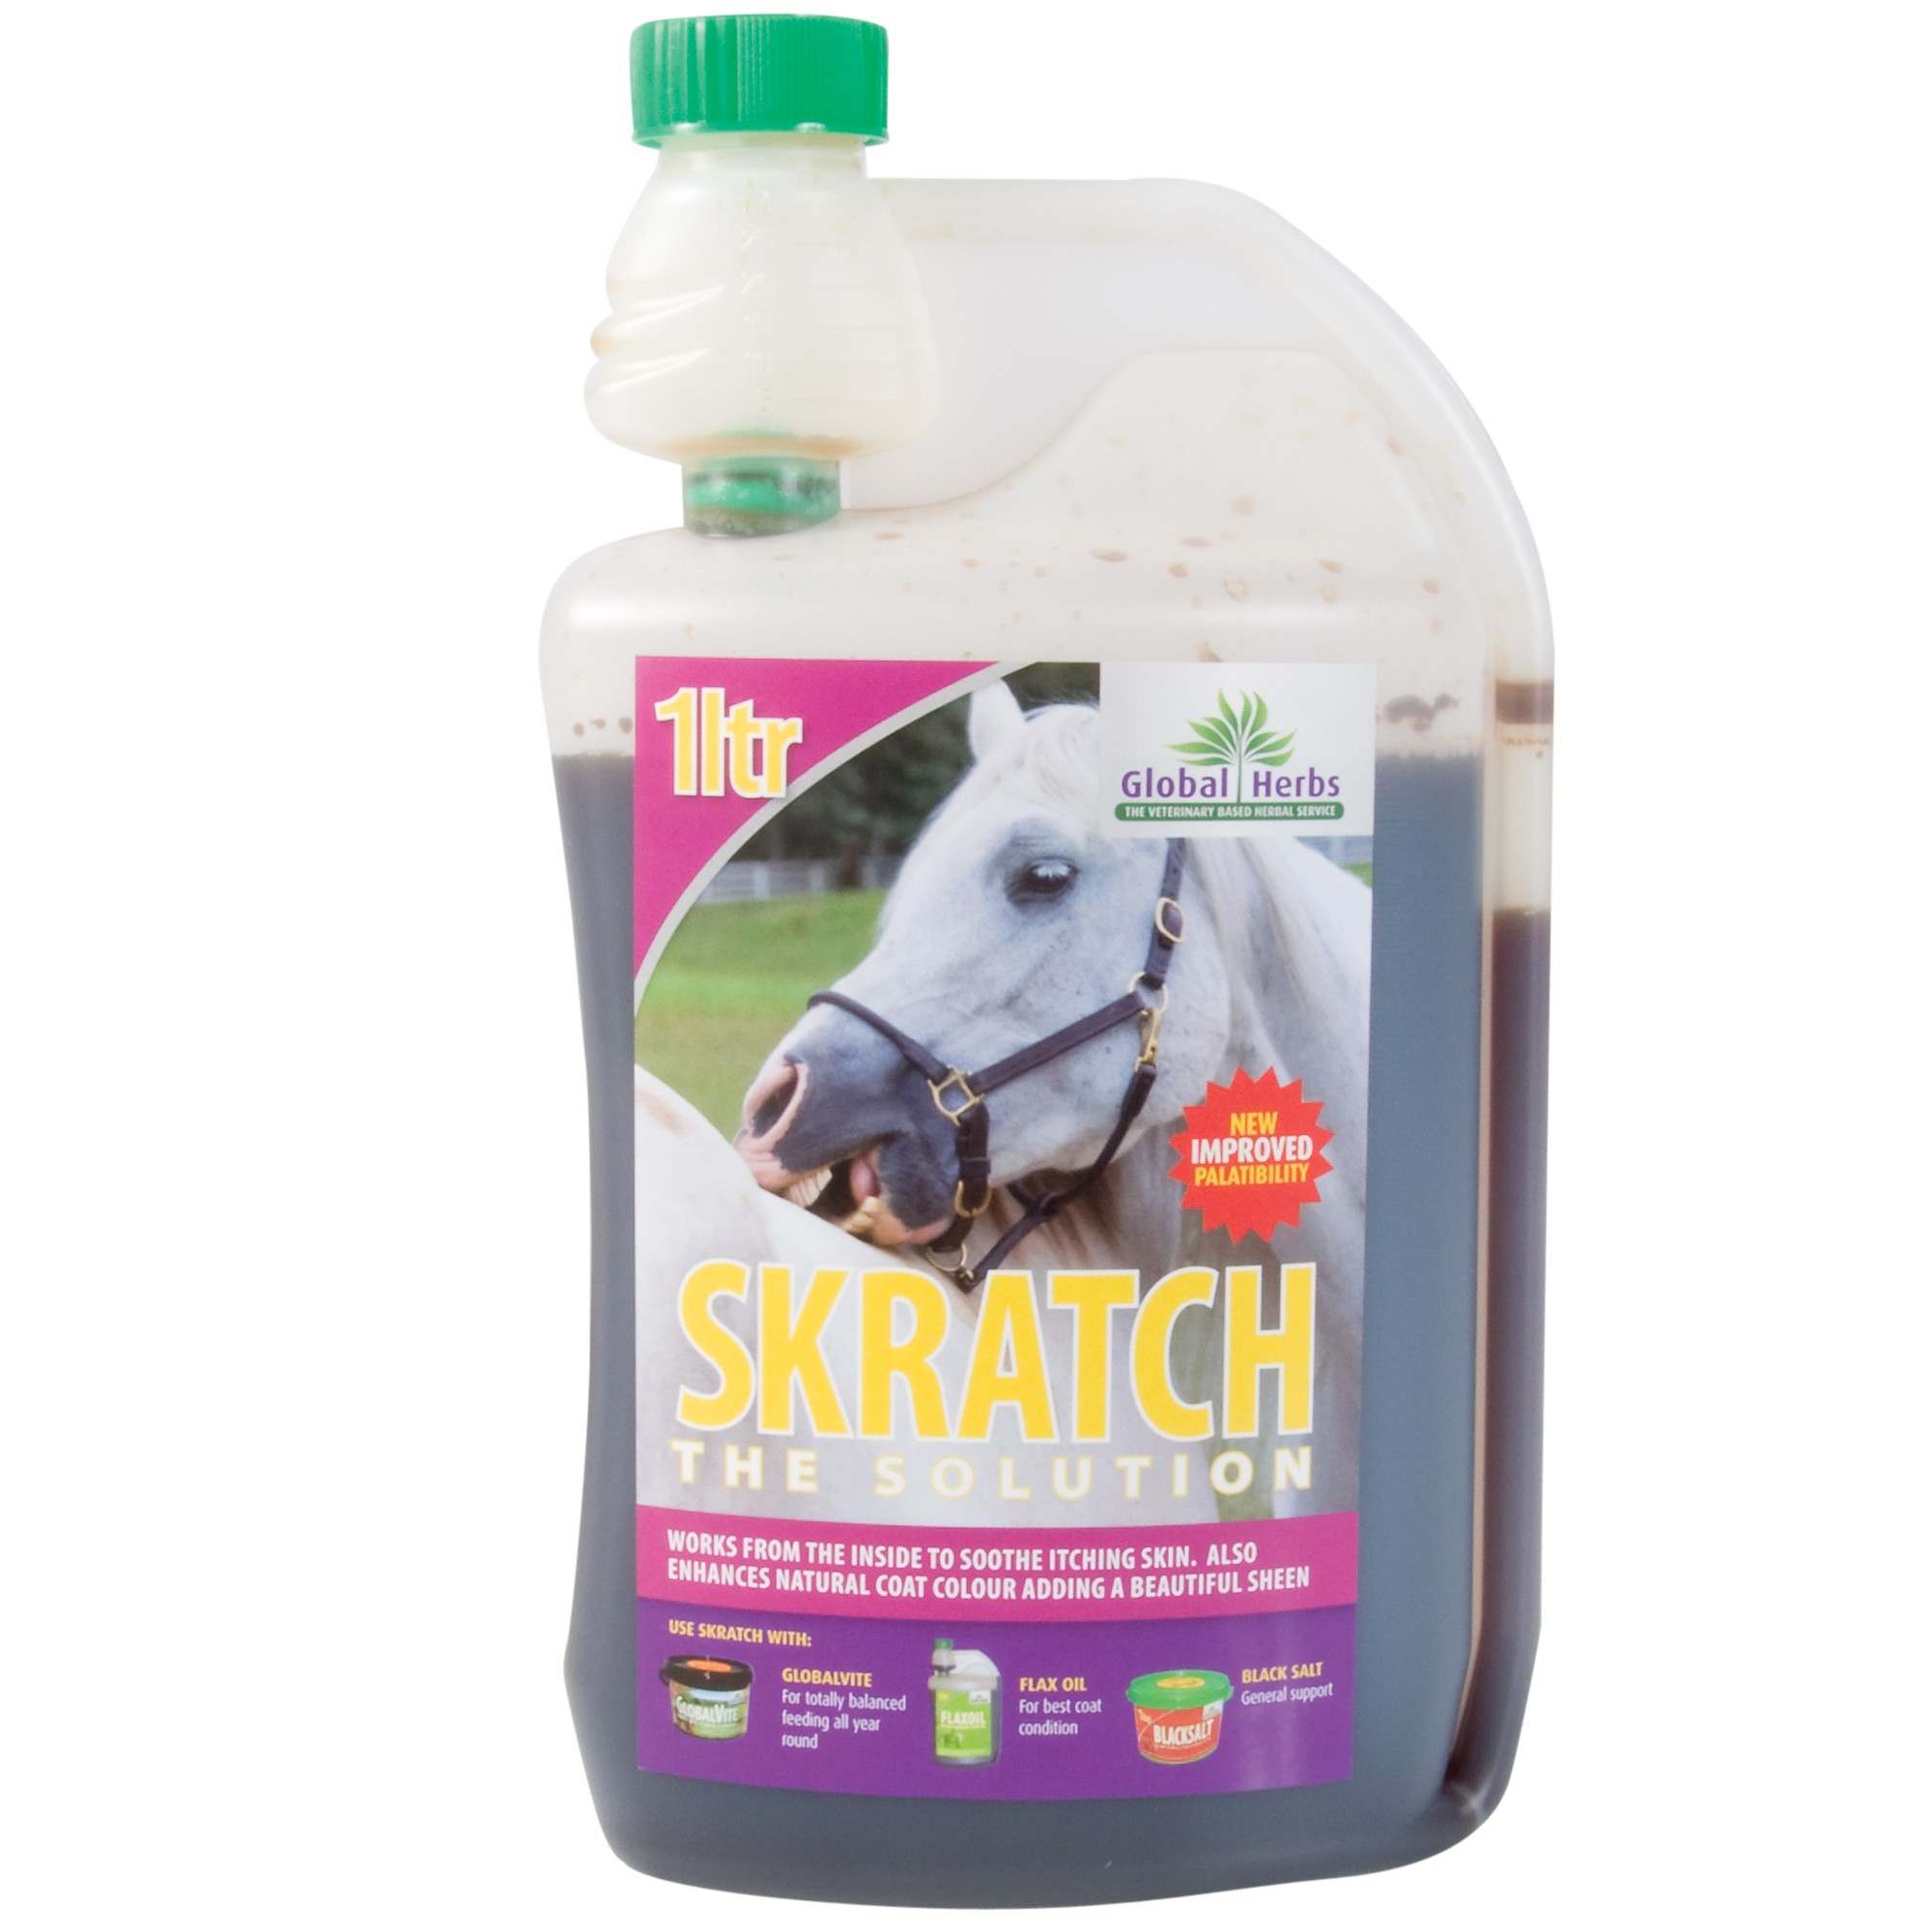 Global Herbs Skratch Syrup for Horses